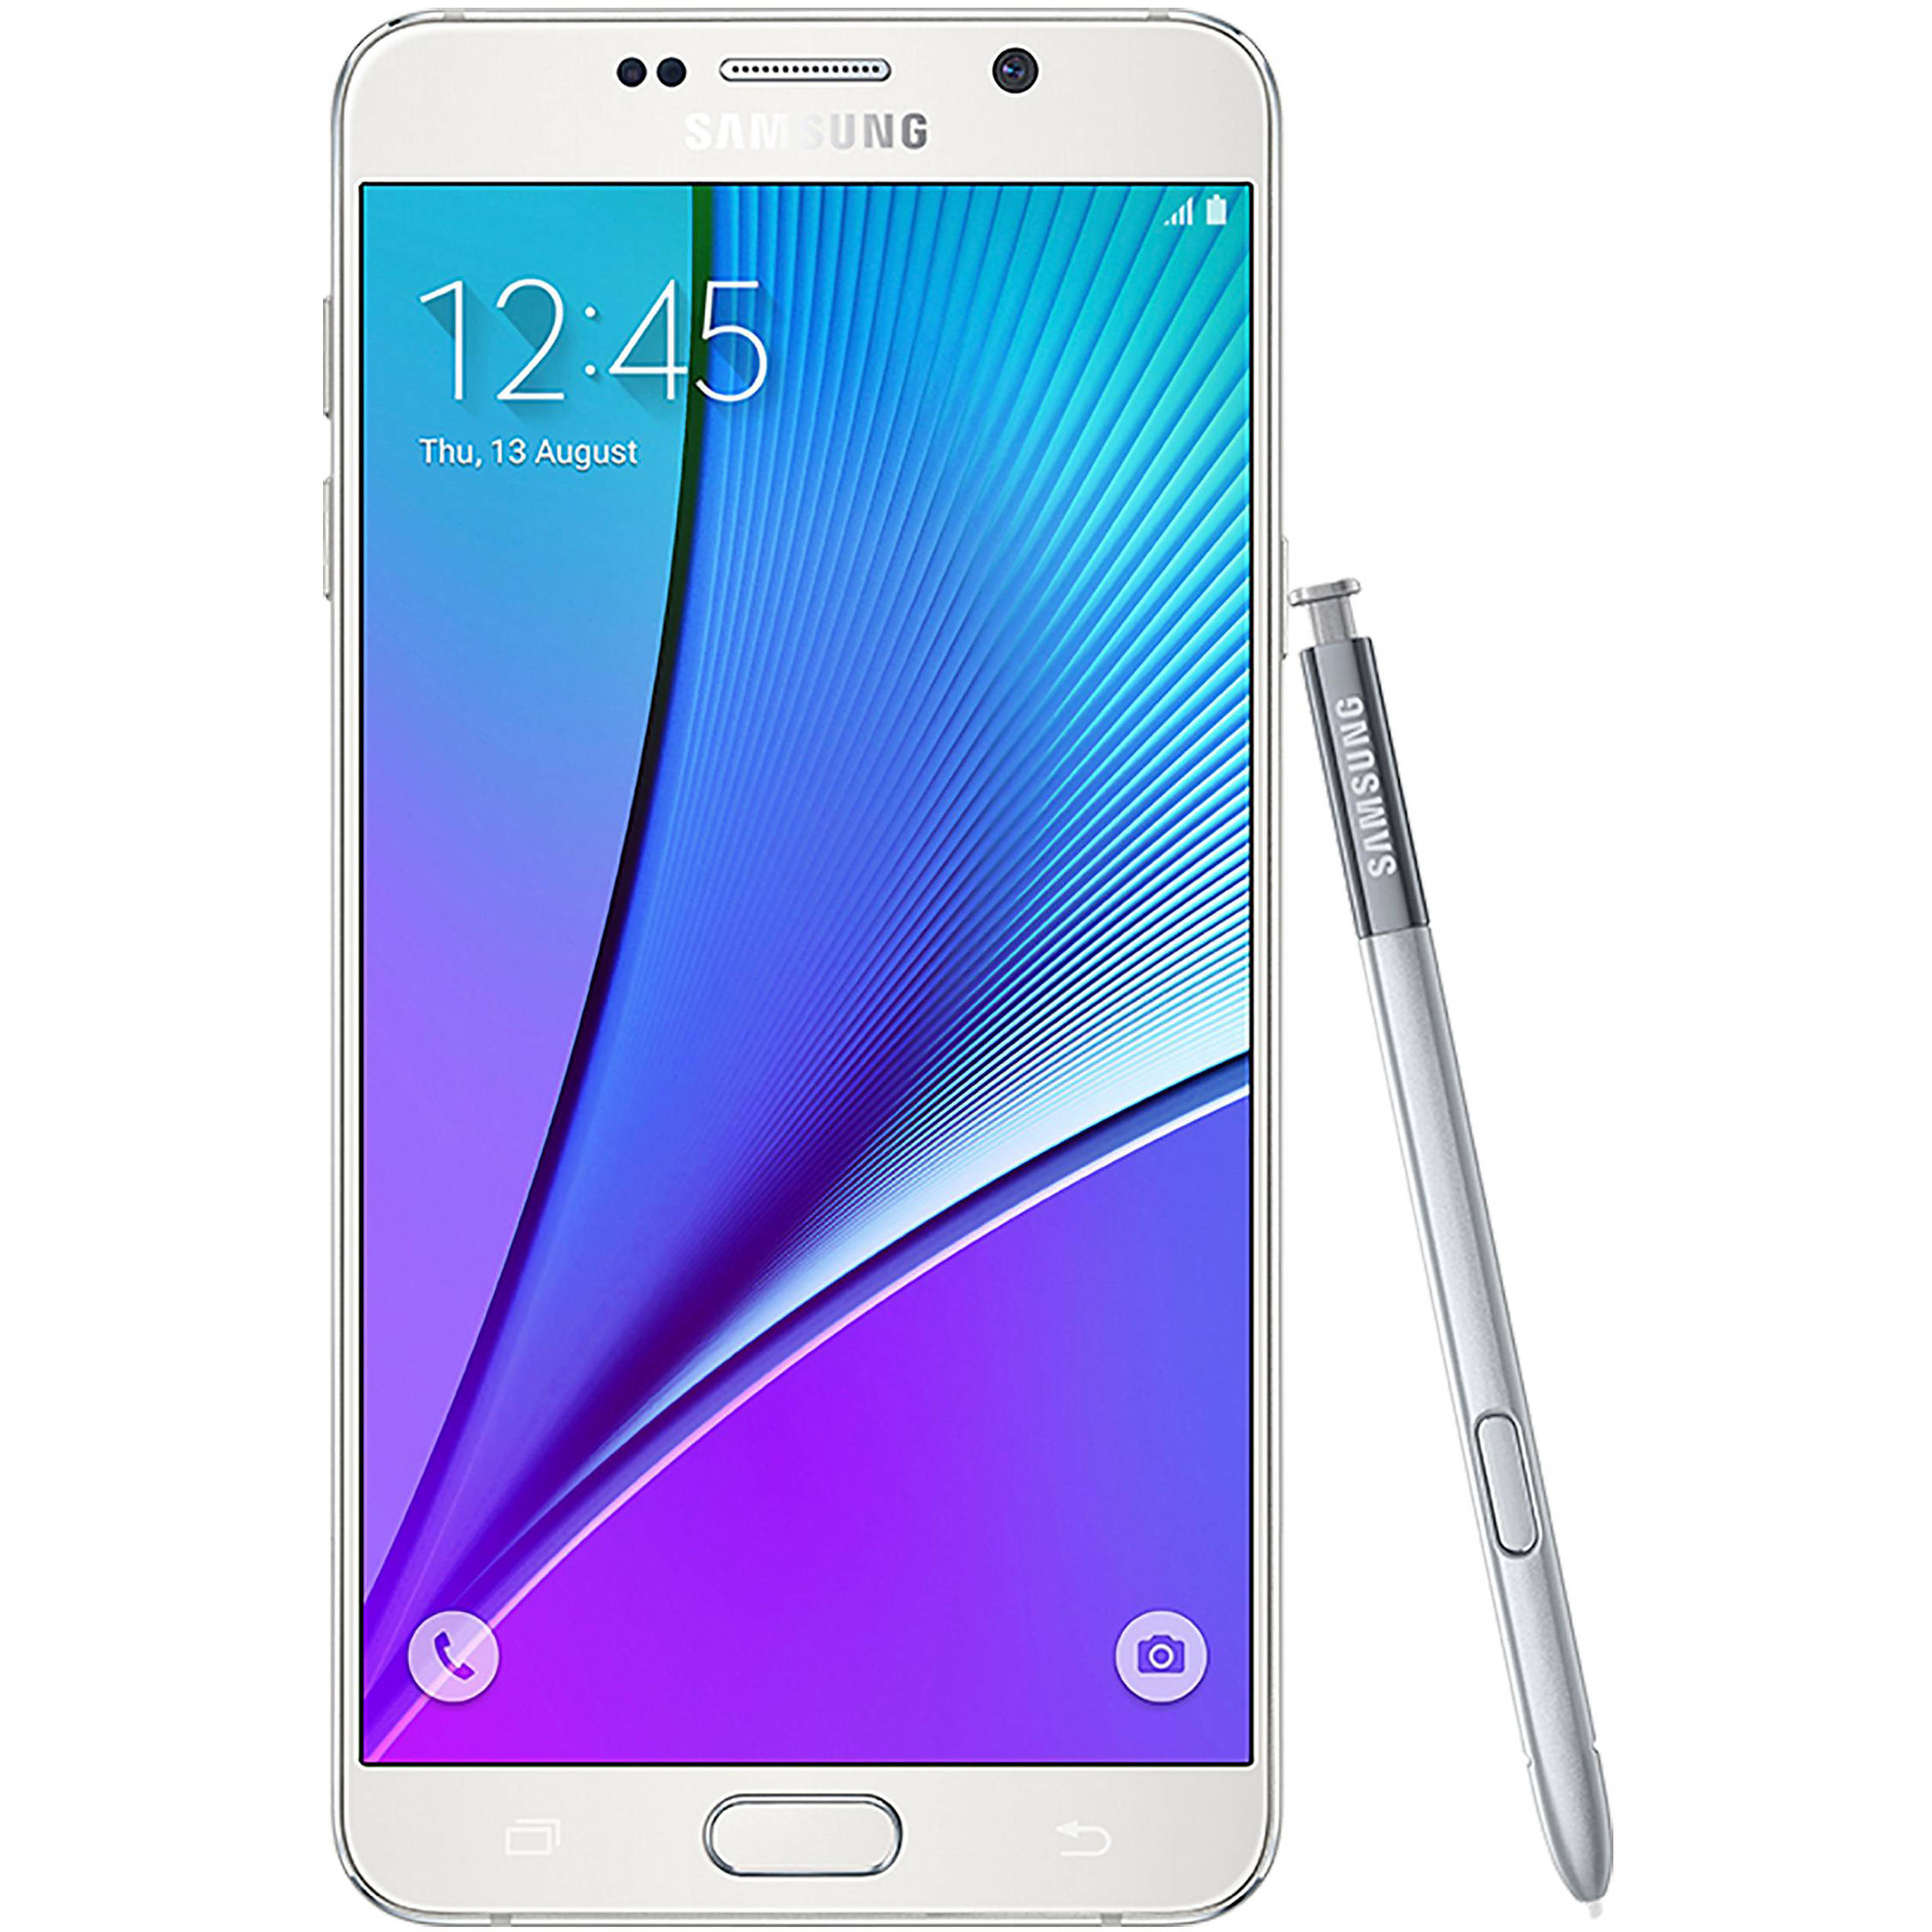 Download COMBINATION file SAMSUNG Galaxy Note5 SM-N920C build number N920CXXU5ARH1